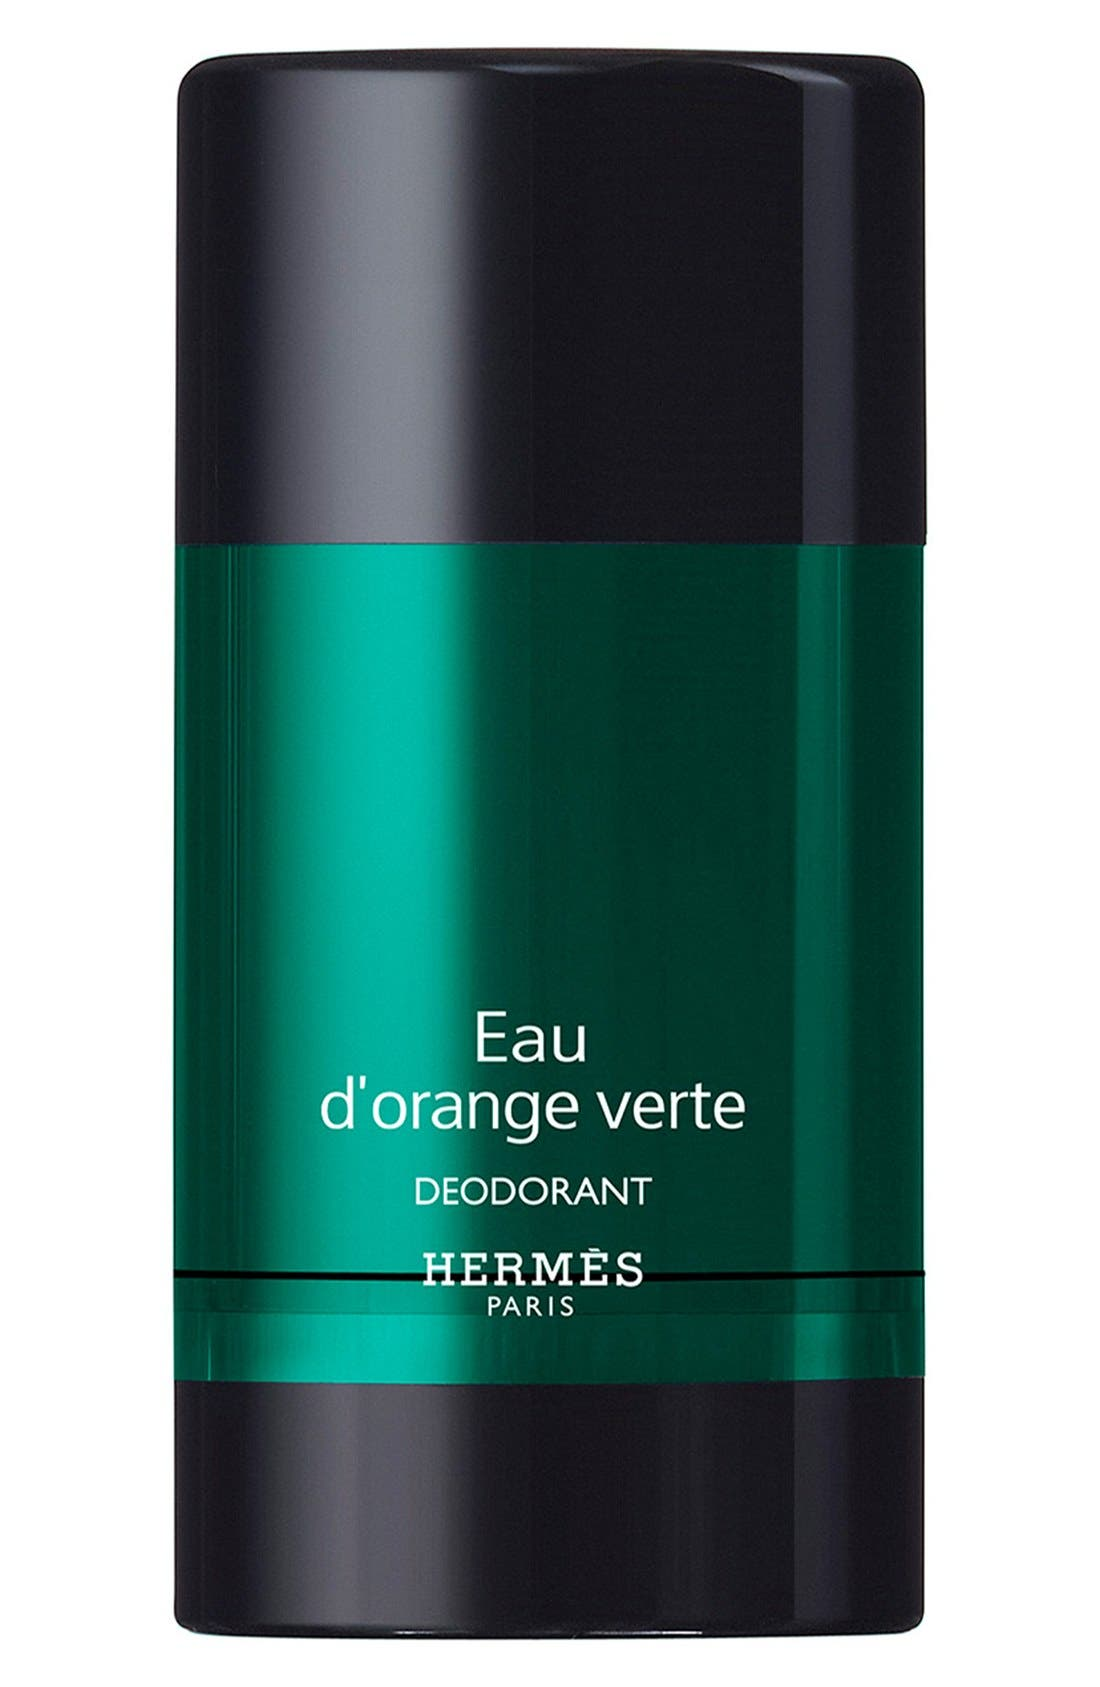 Eau d'orange verte - Alcohol-free deodorant stick,                             Main thumbnail 1, color,                             NO COLOR